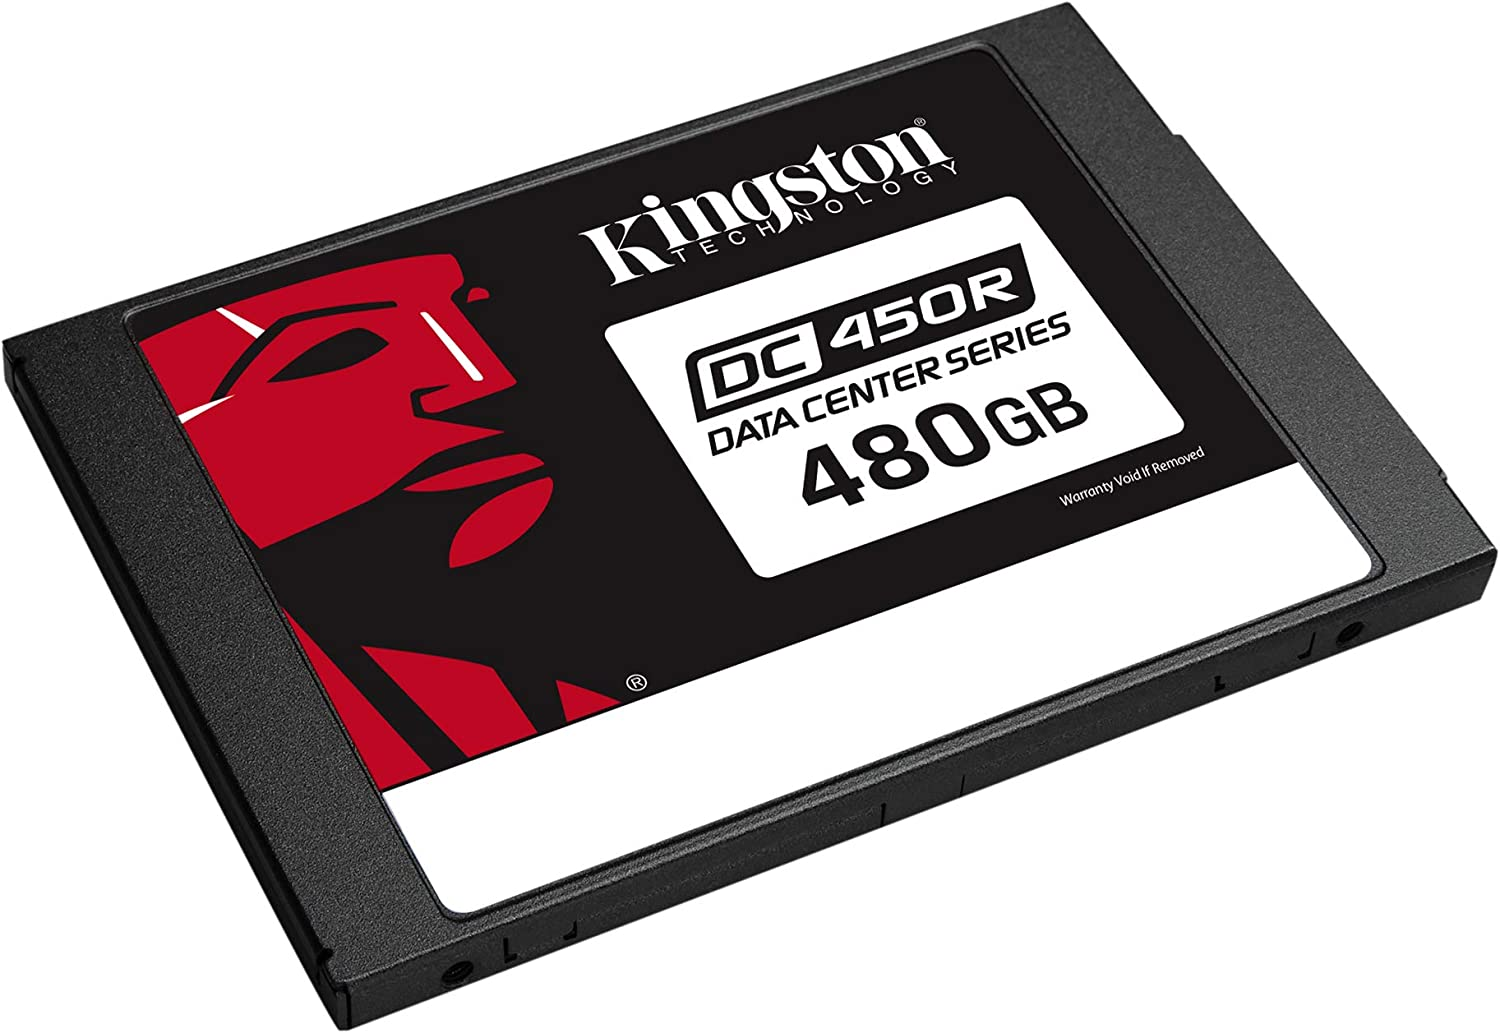 Kingston Data Center DC450R SSD (SEDC450R/3840G) 2.5